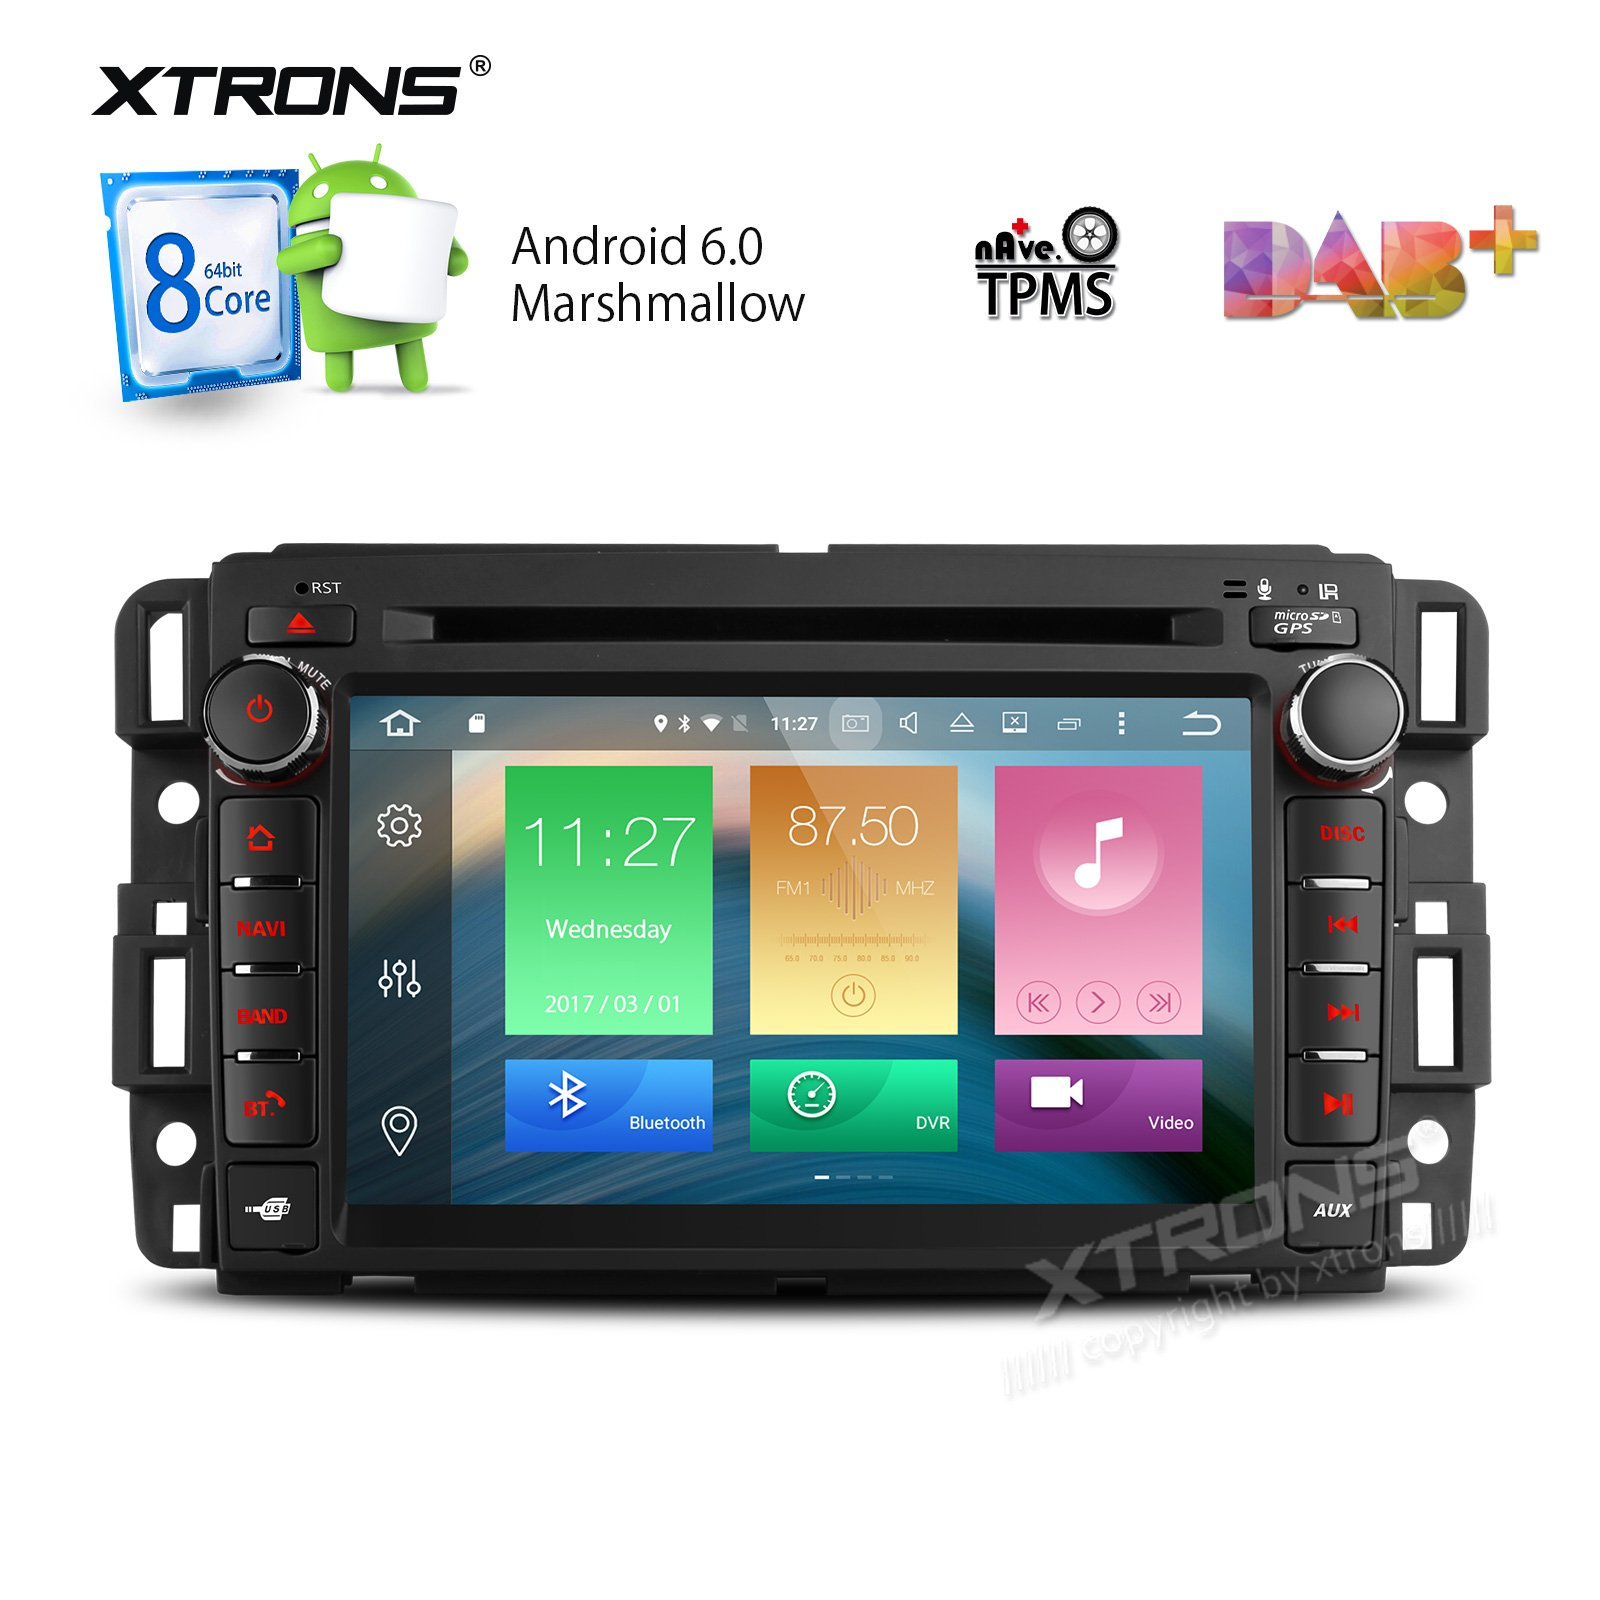 XTRONS 7 Inch Android 6.0 Octa-Core Capacitive Touch Screen Car Stereo Radio DVD Player GPS CANbus Screen Mirroring Function OBD2 Tire Pressure Monitoring for GMC Chevrolet